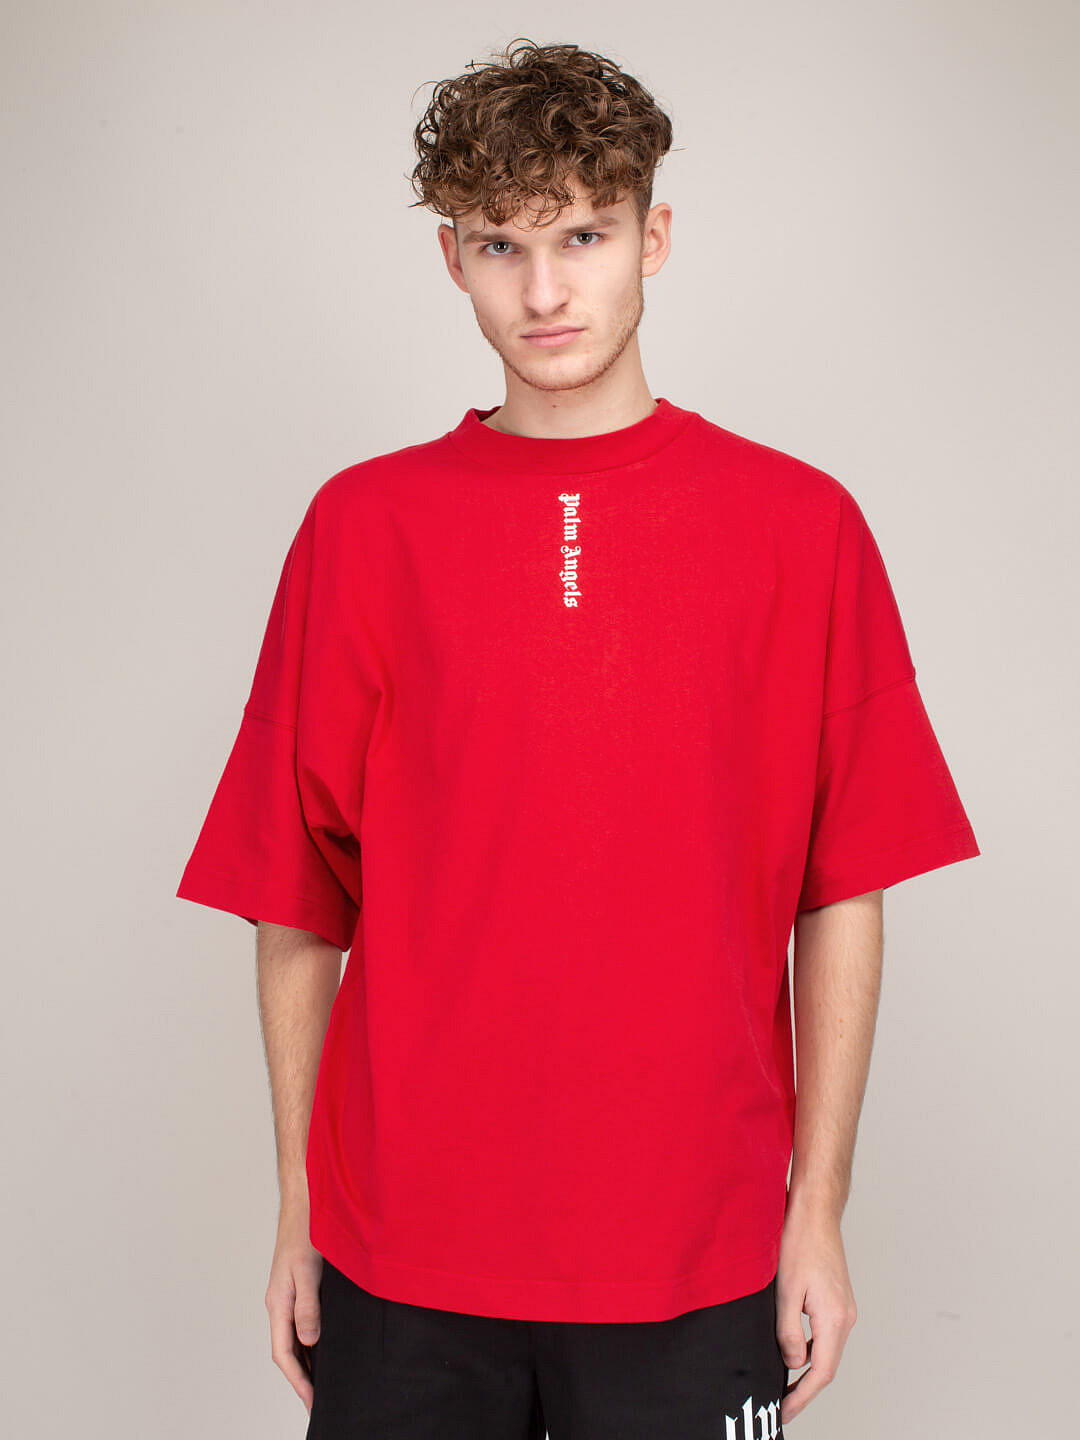 Logo Over Tee red white